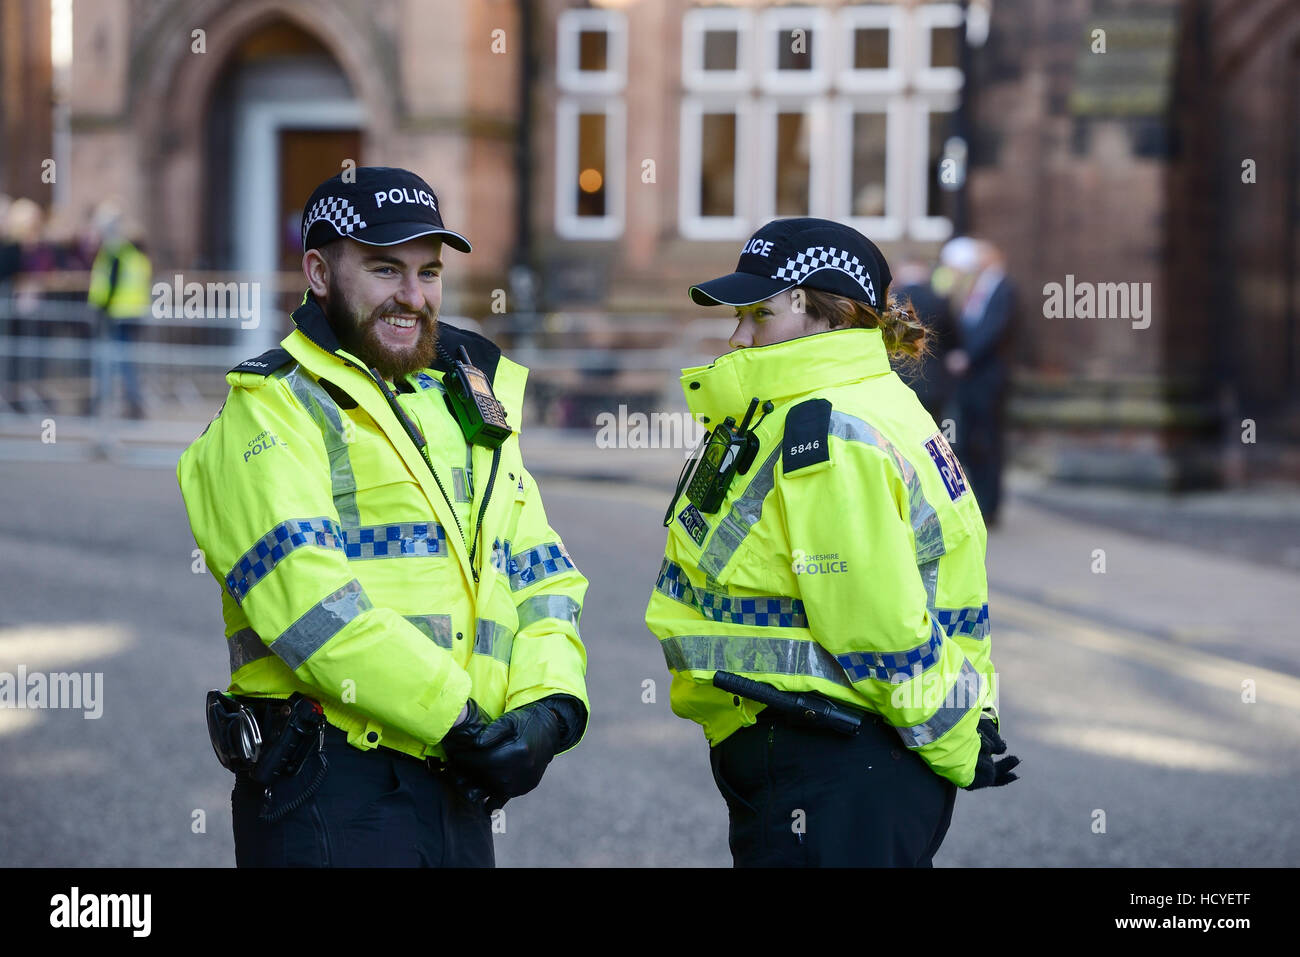 Two police officers in Chester city centre UK - Stock Image